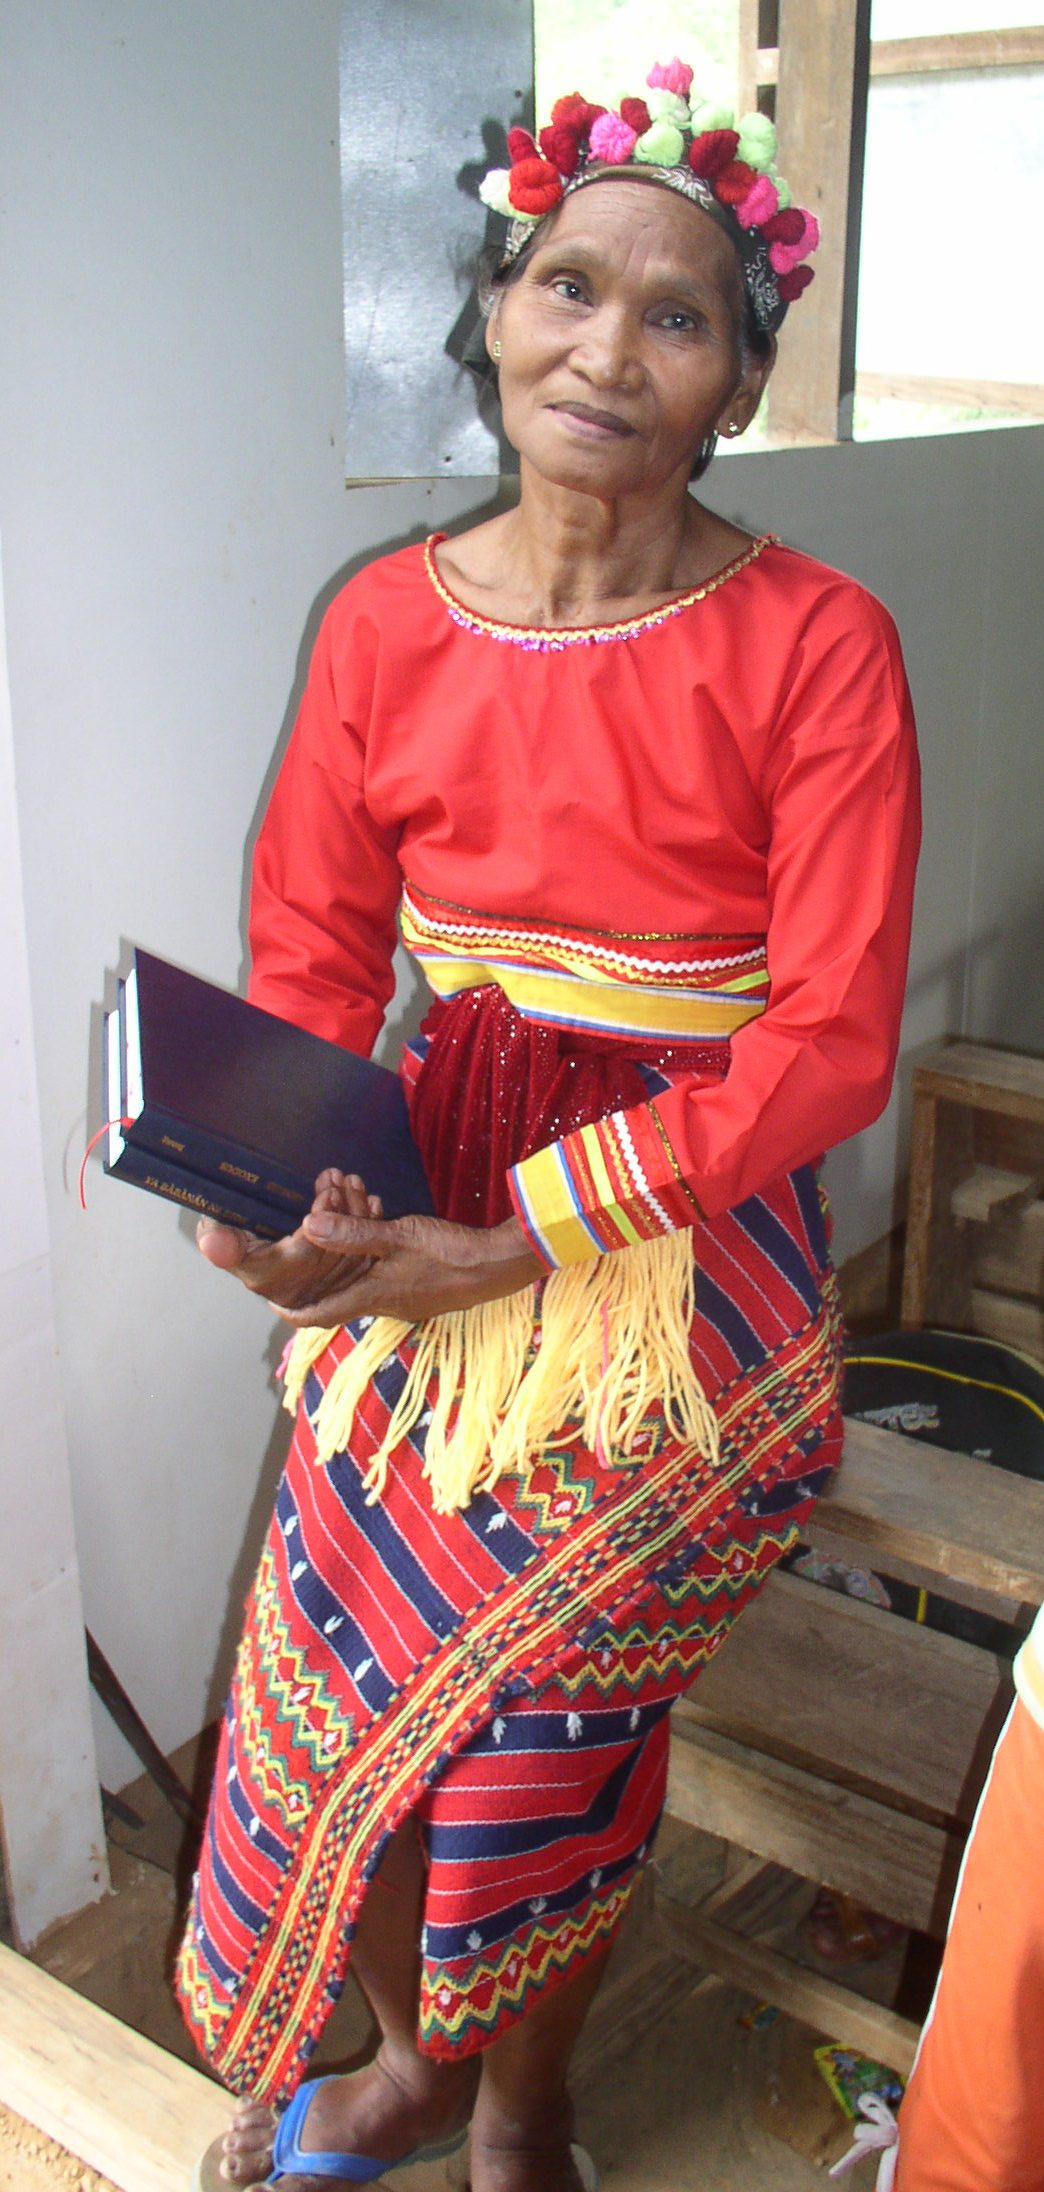 traditional igorot attire philippines isneg filipino ethnic clothing wearing region cordillera tribe kalinga province tribal mountain ng culture file costume